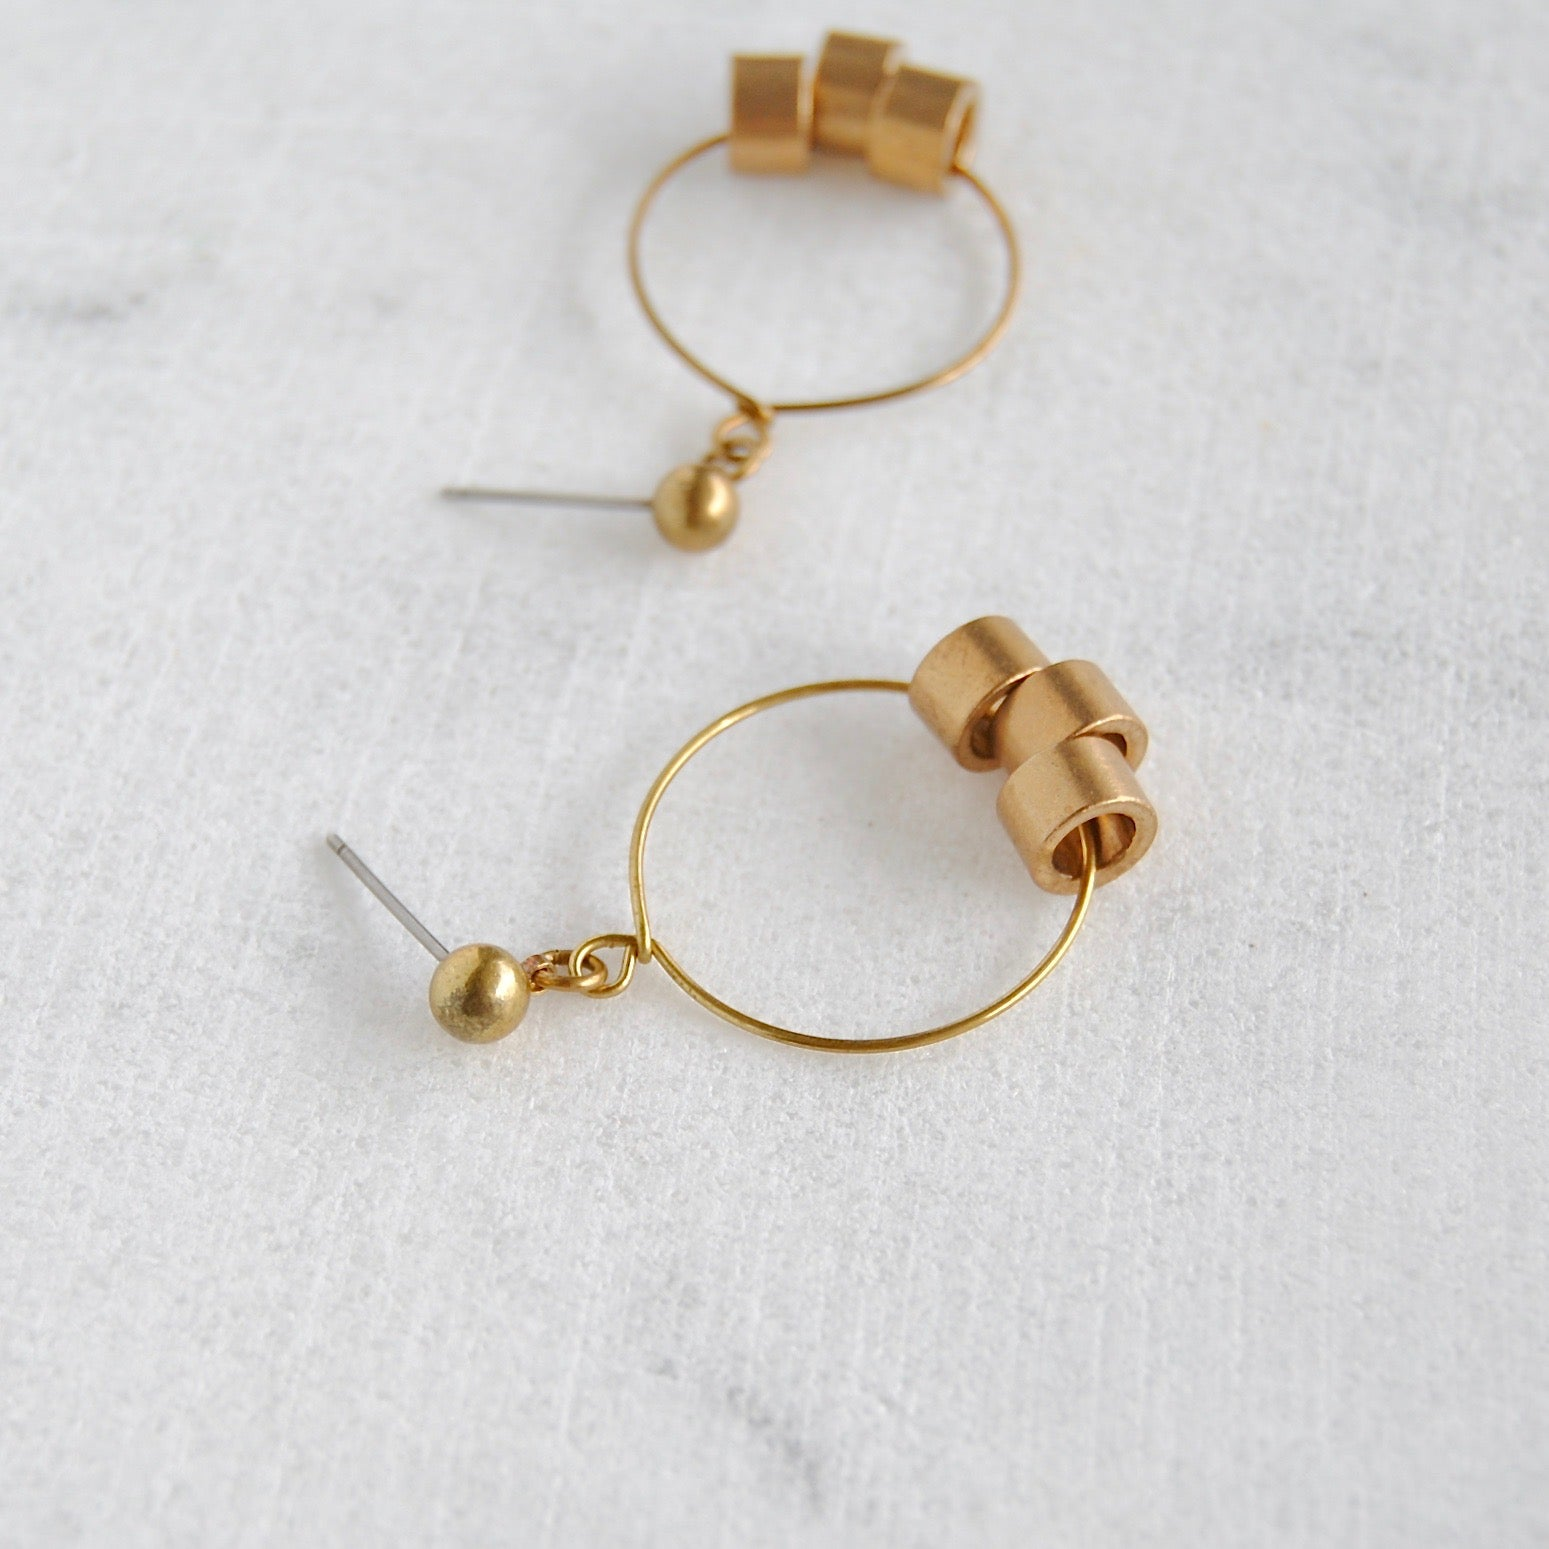 BRASS BEADS EARRINGS